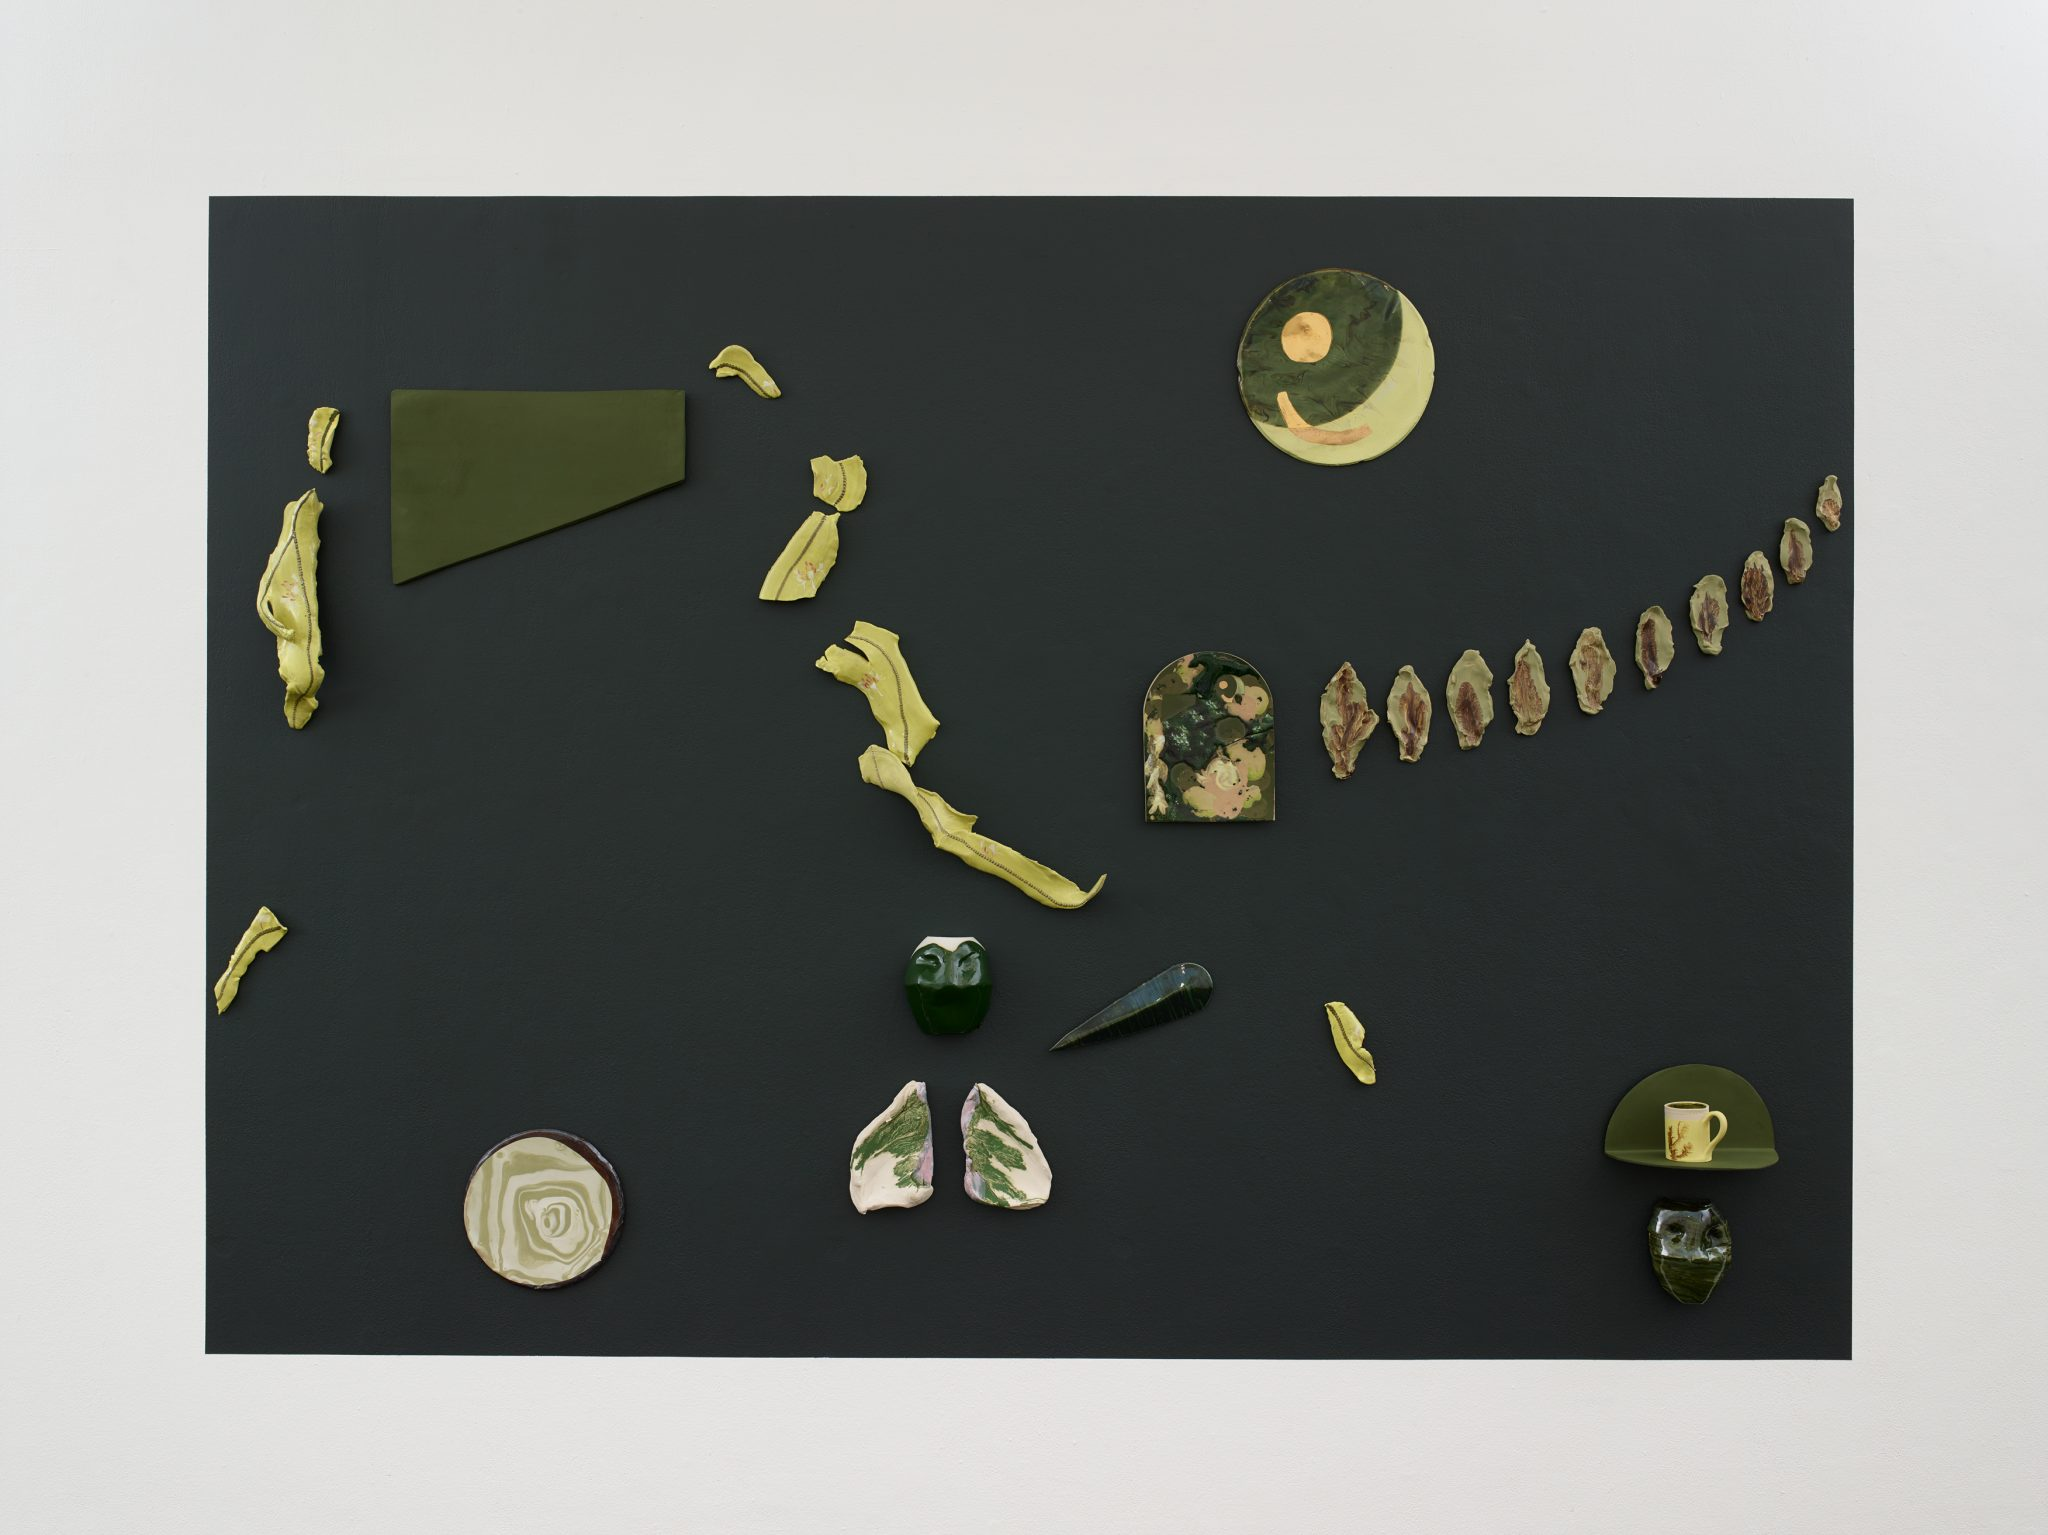 Making all the greens unstable, Jerwood Makers Open, Bethan Lloyd Worthington